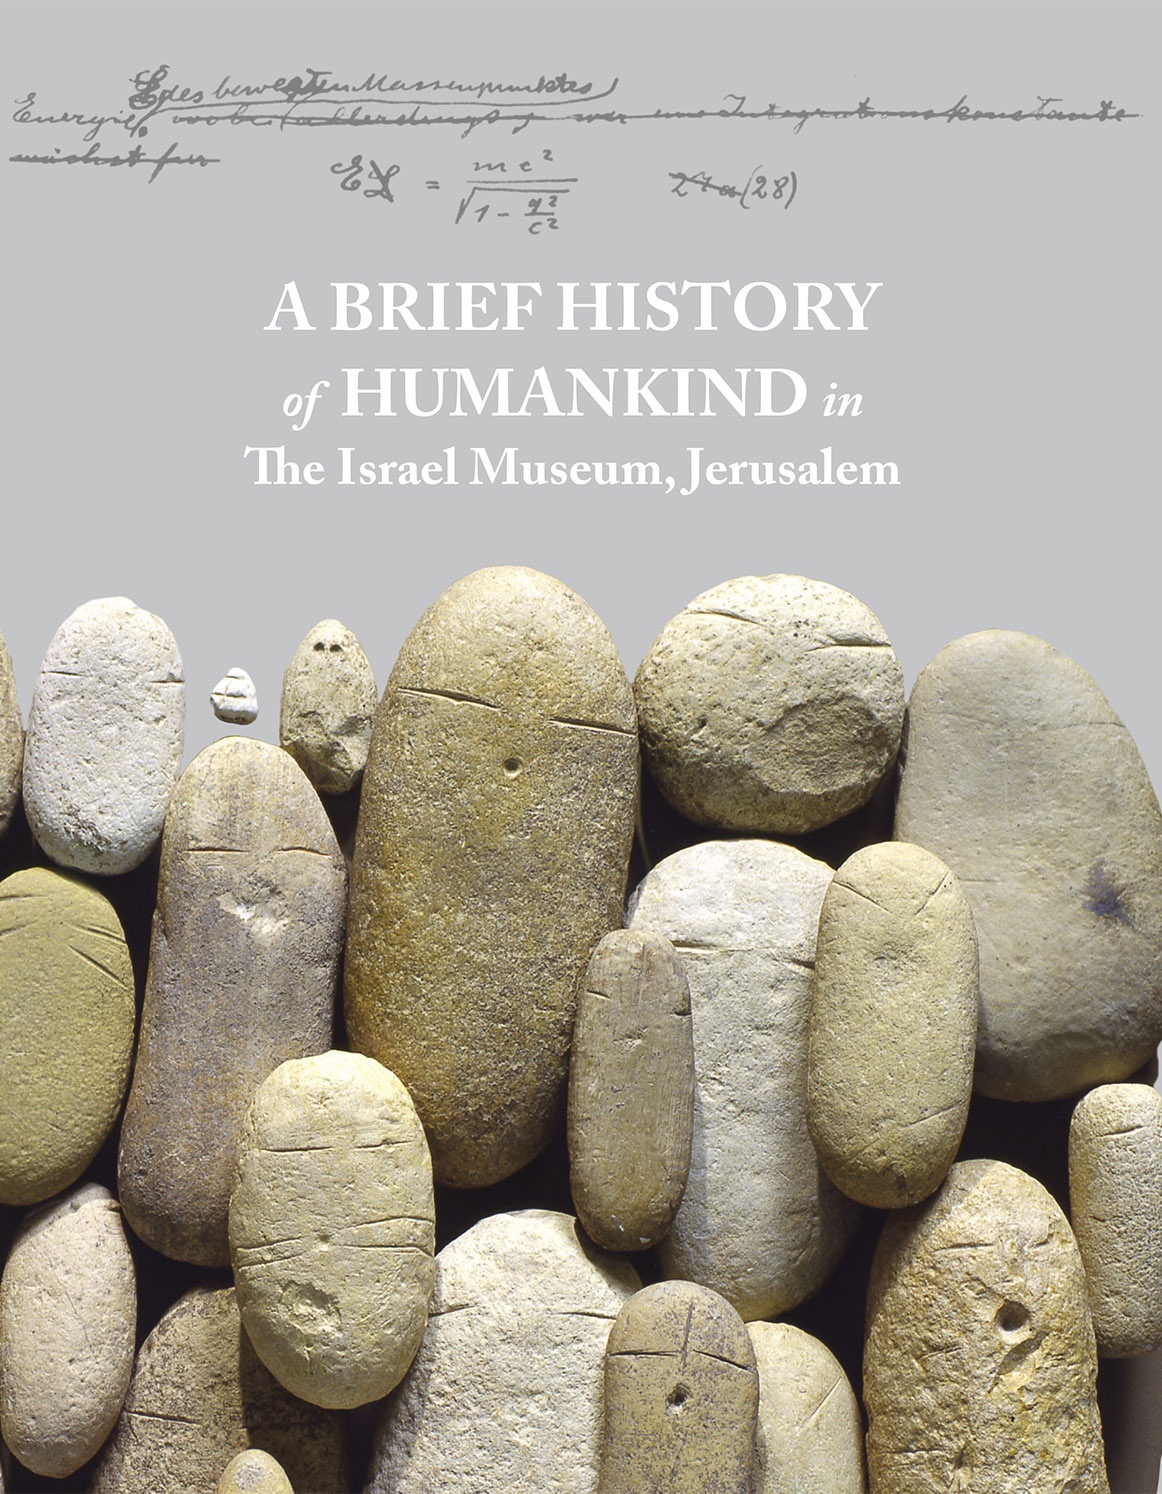 A Brief History Of Humankind In The Israel Museum, Jerusalem